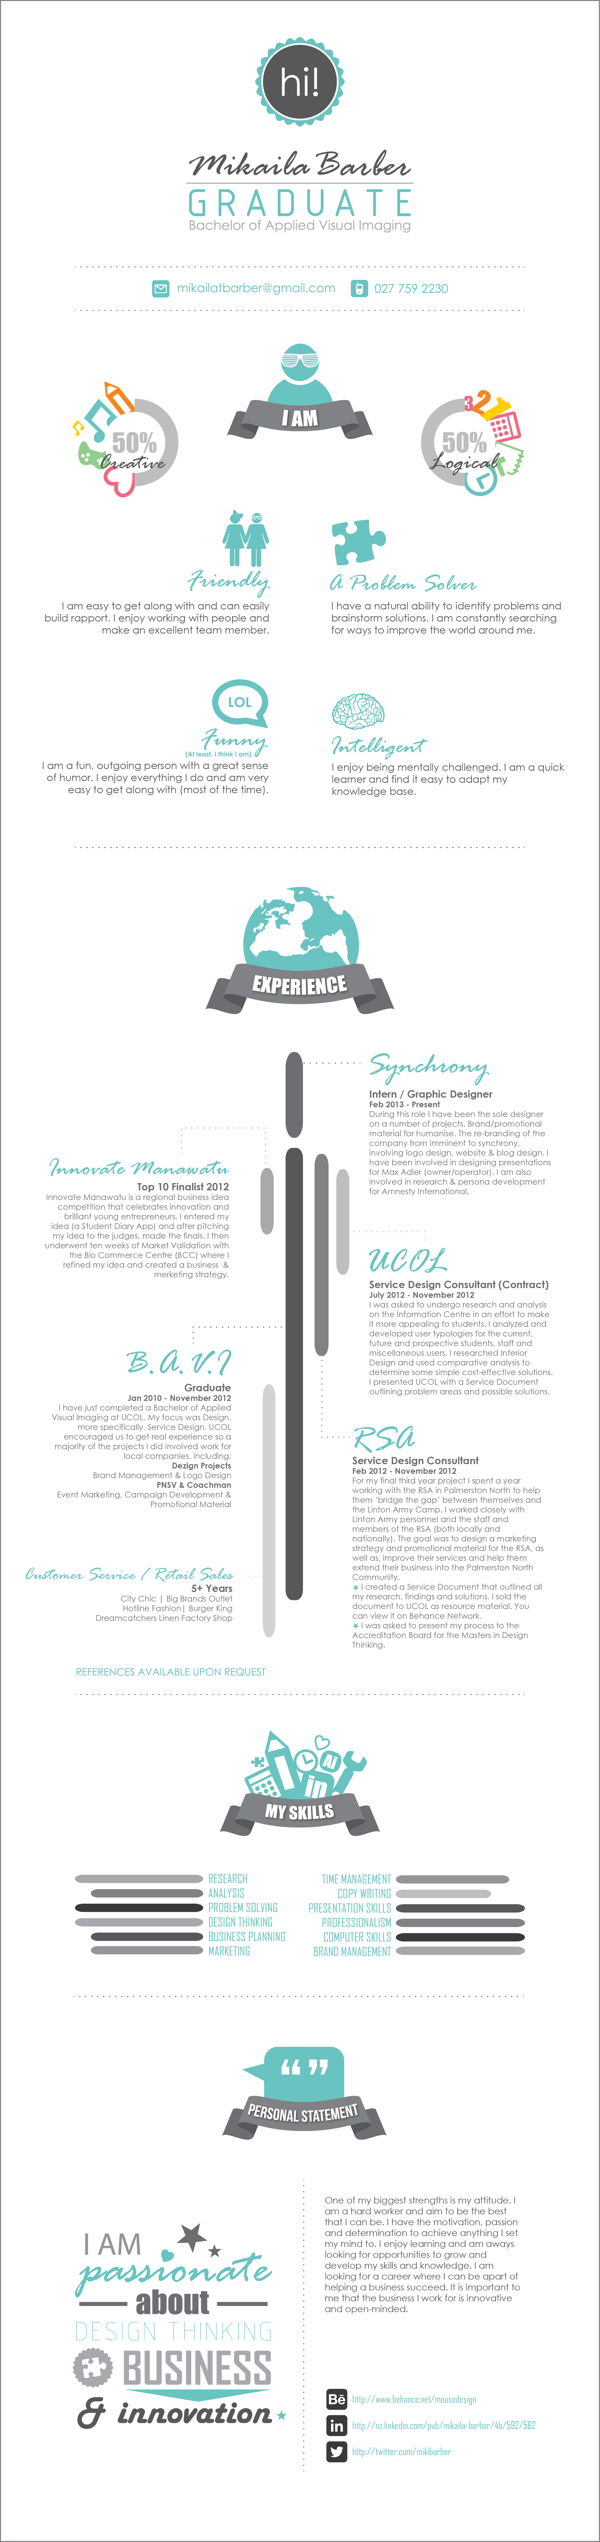 cv and creative resume by mikaila barber  via behance